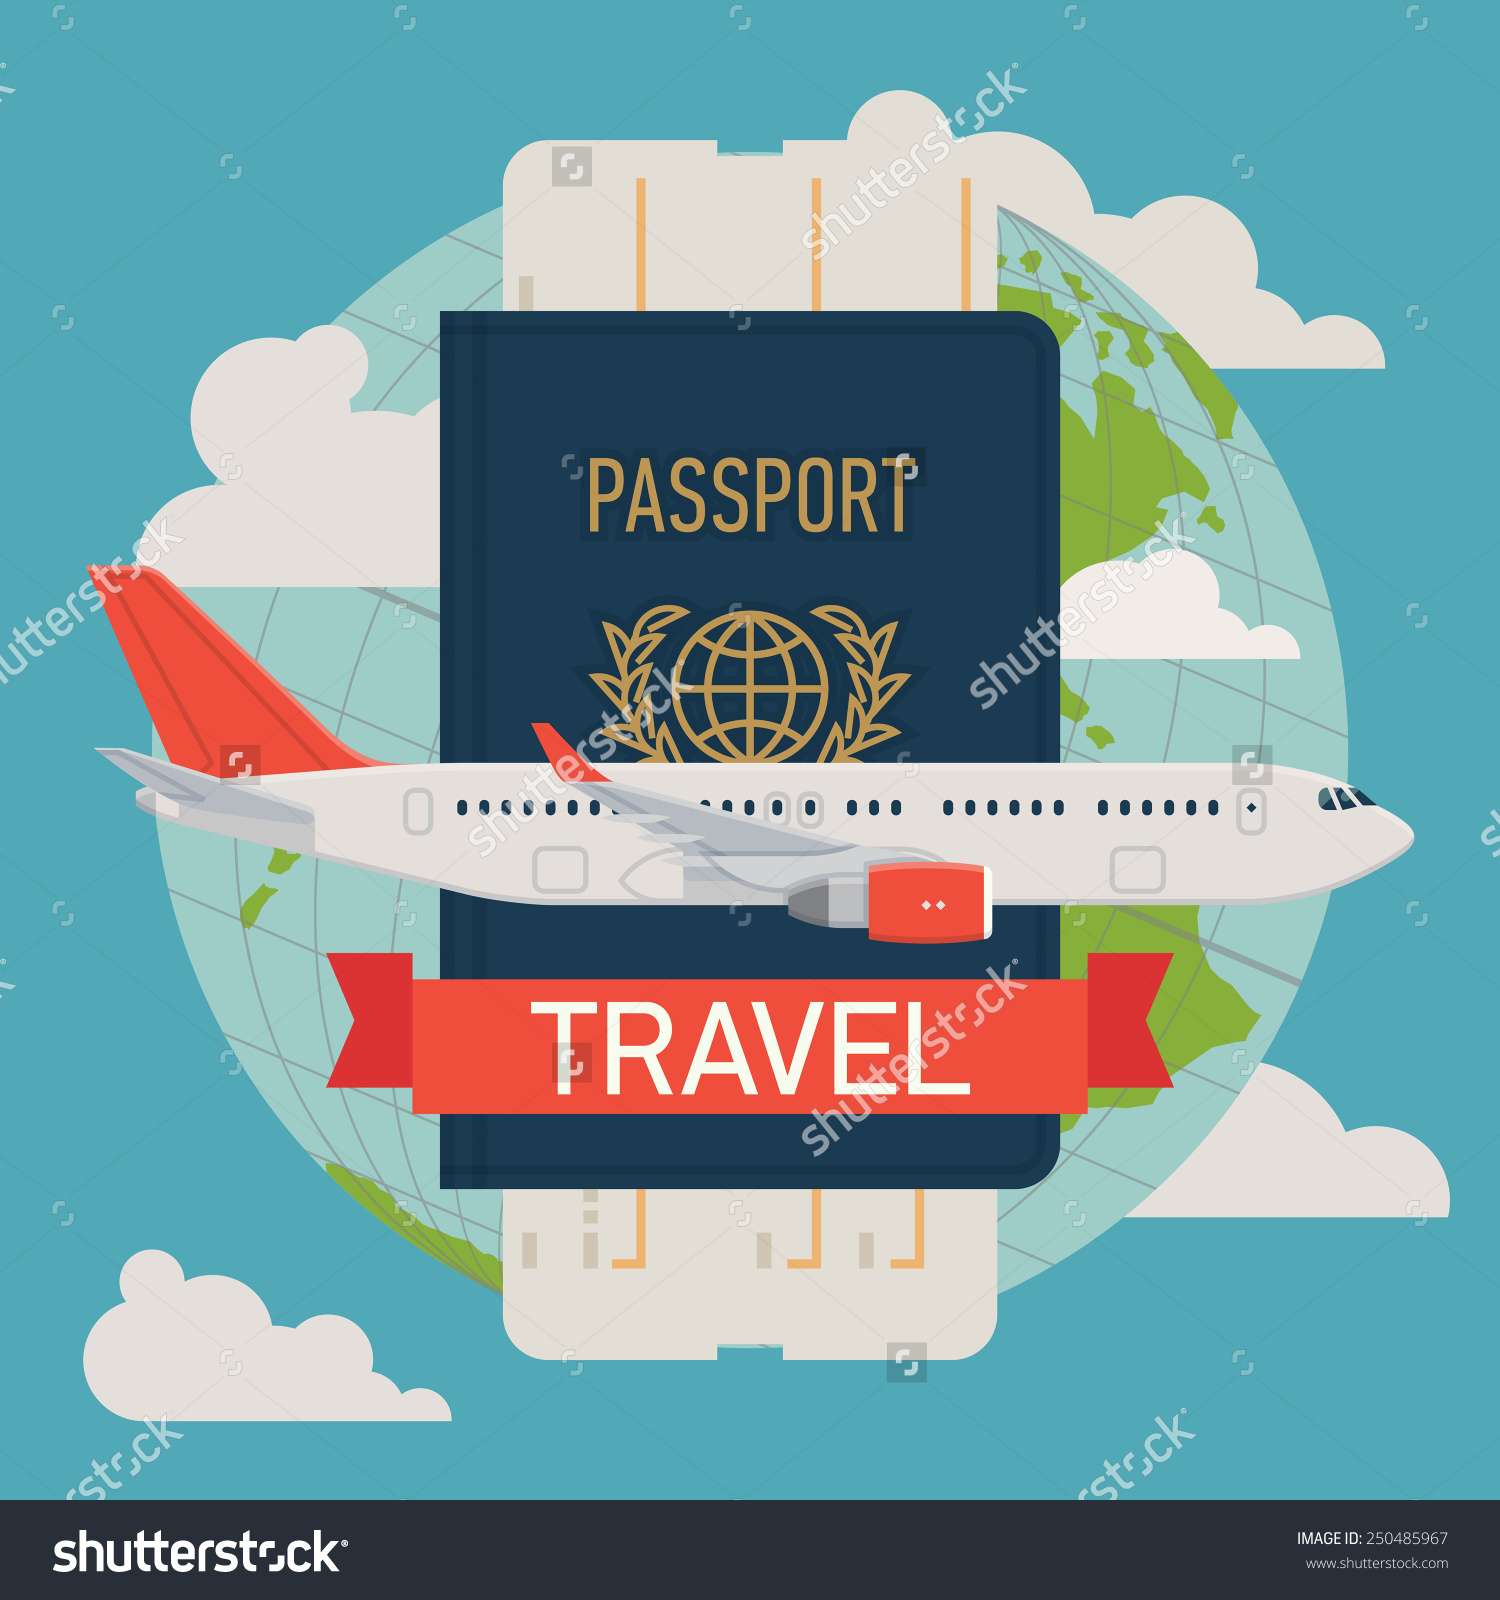 Passport and Airline Ticket